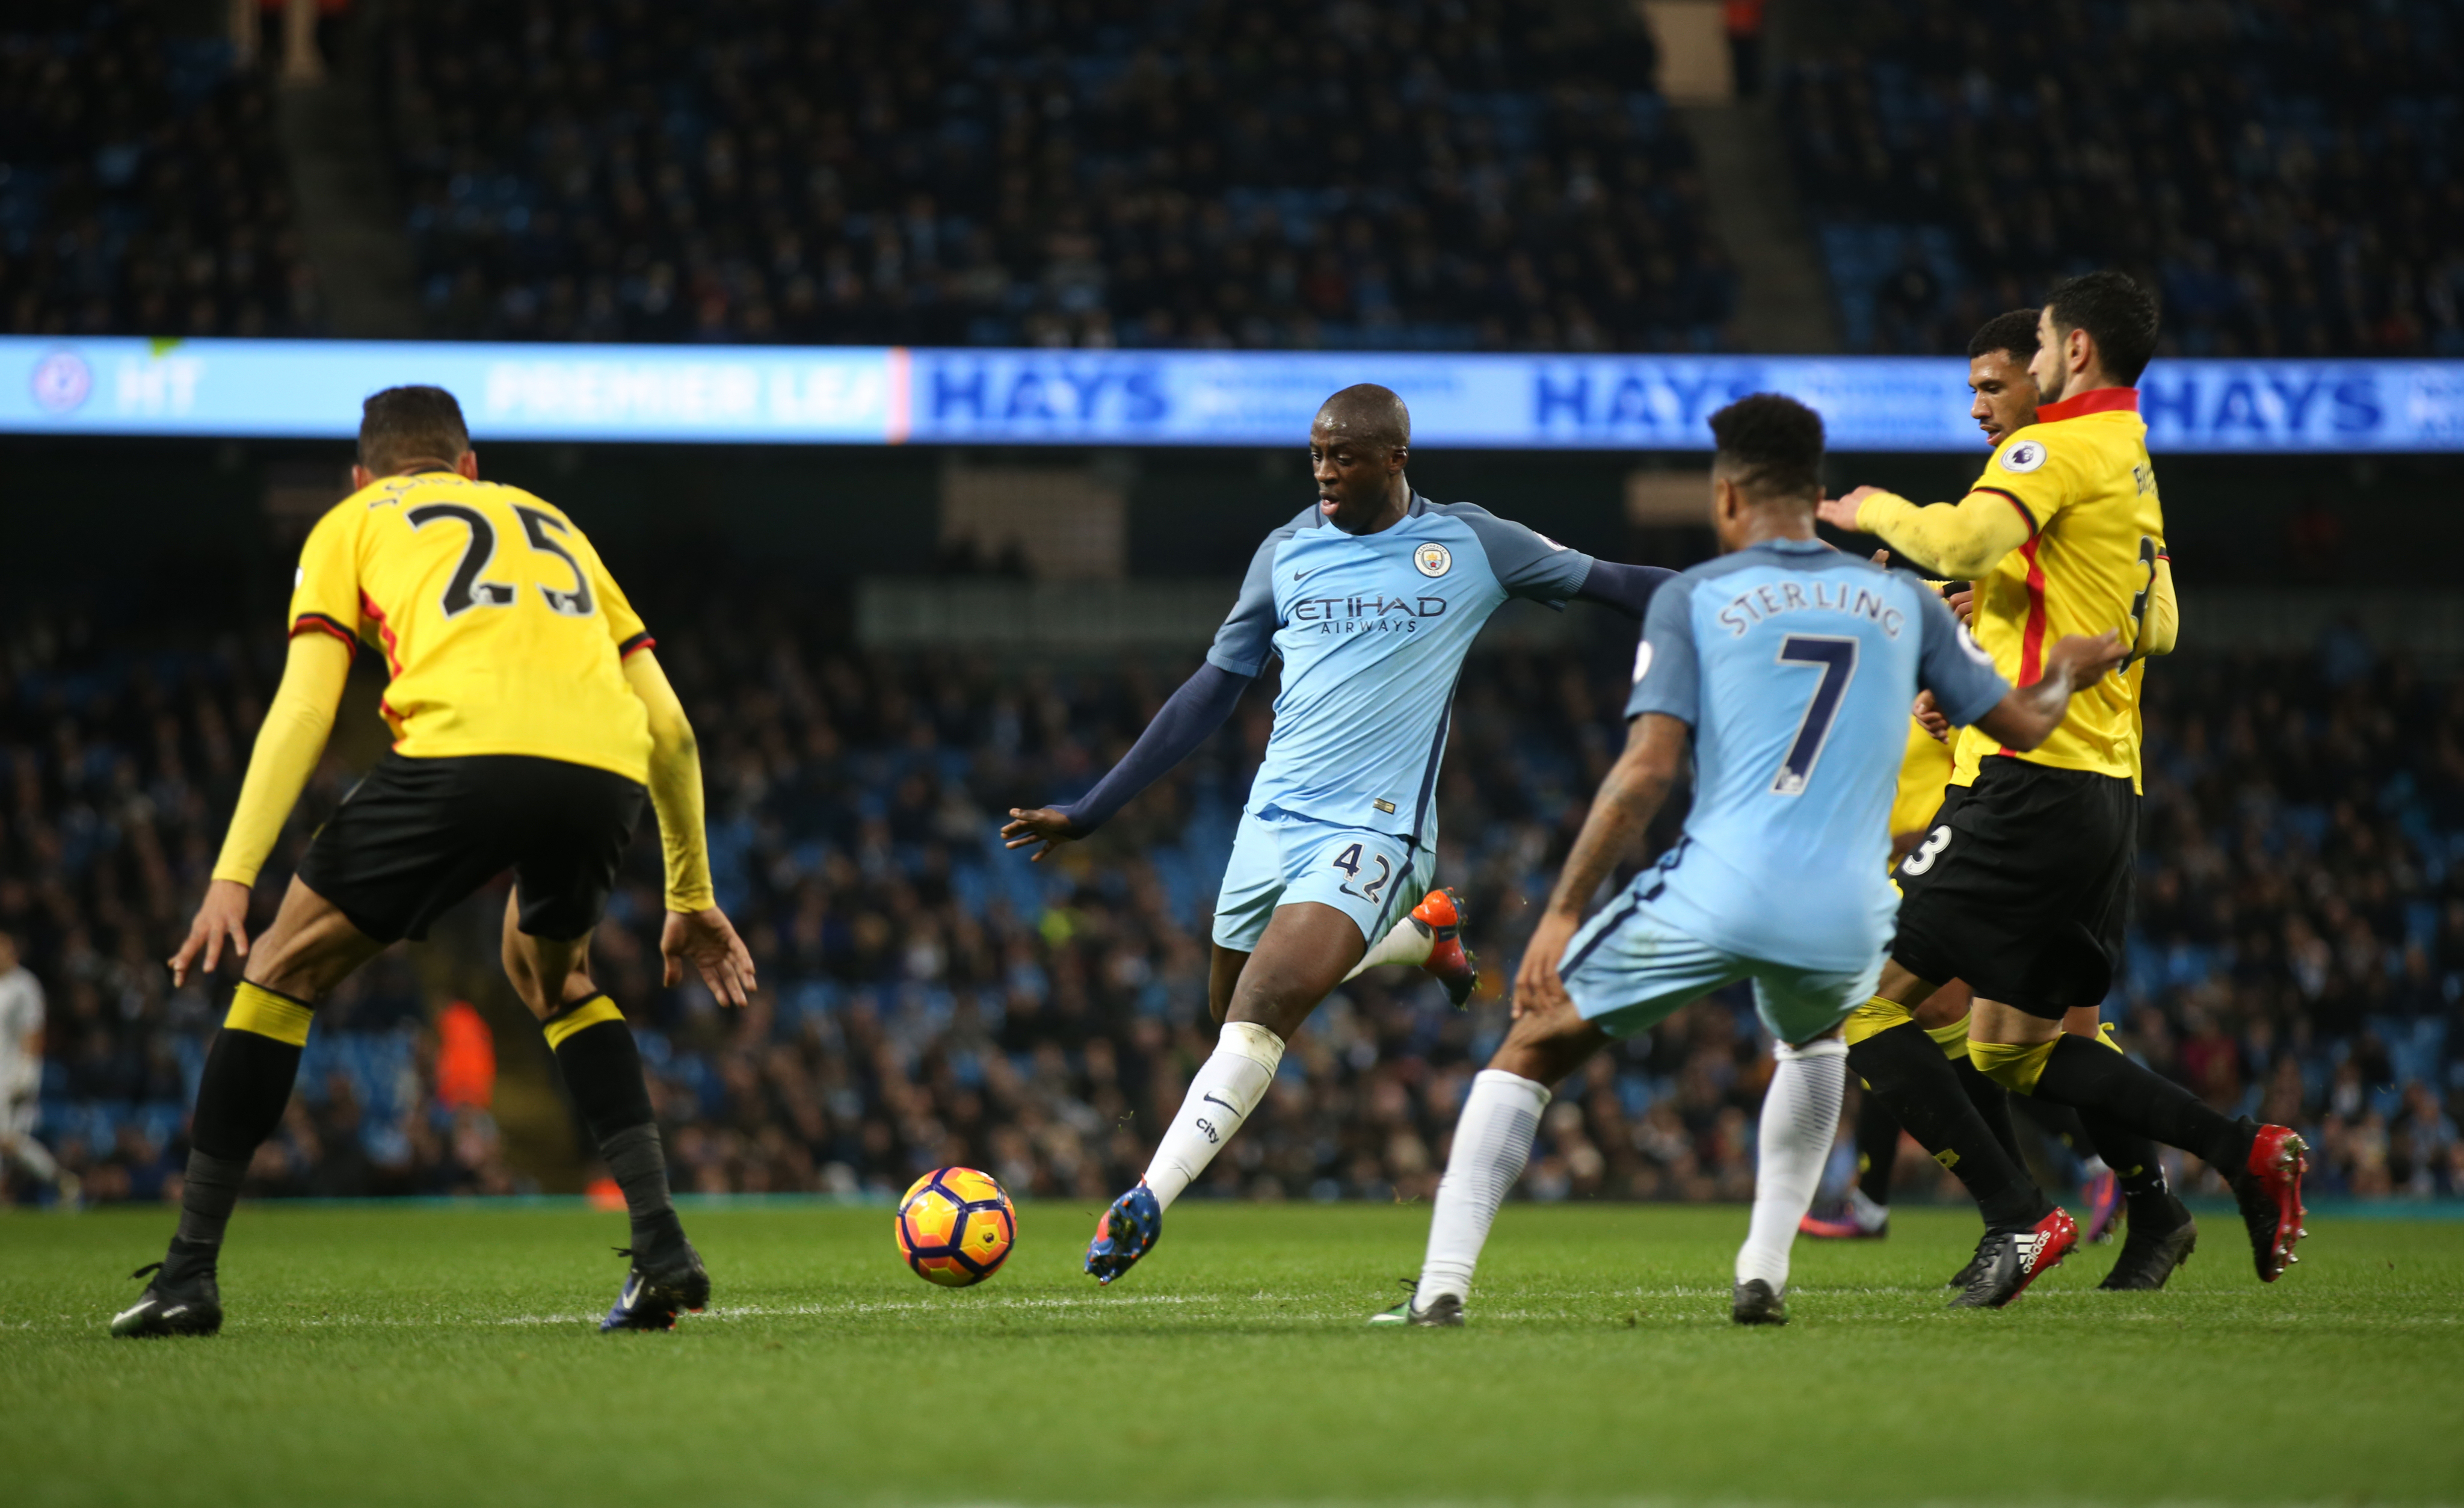 Manchester City's Yaya Toure in action against Watford